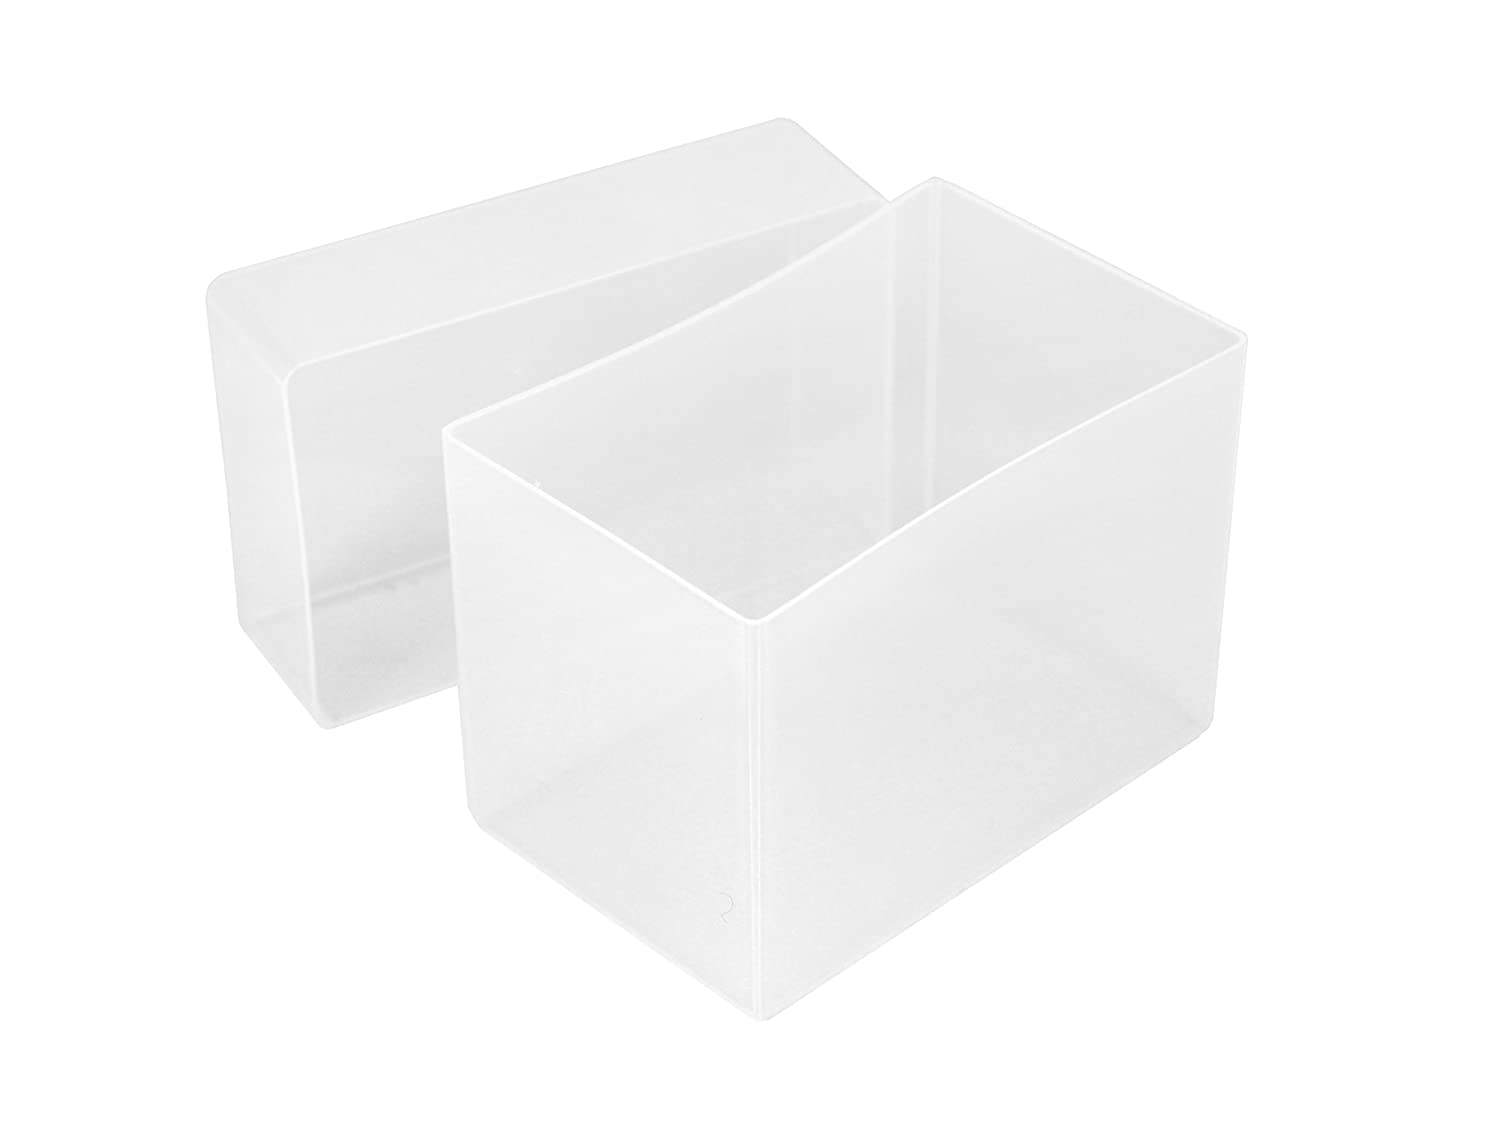 WestonBoxes Plastic Business Card Boxes 70mm Deep Green, Pack of 5